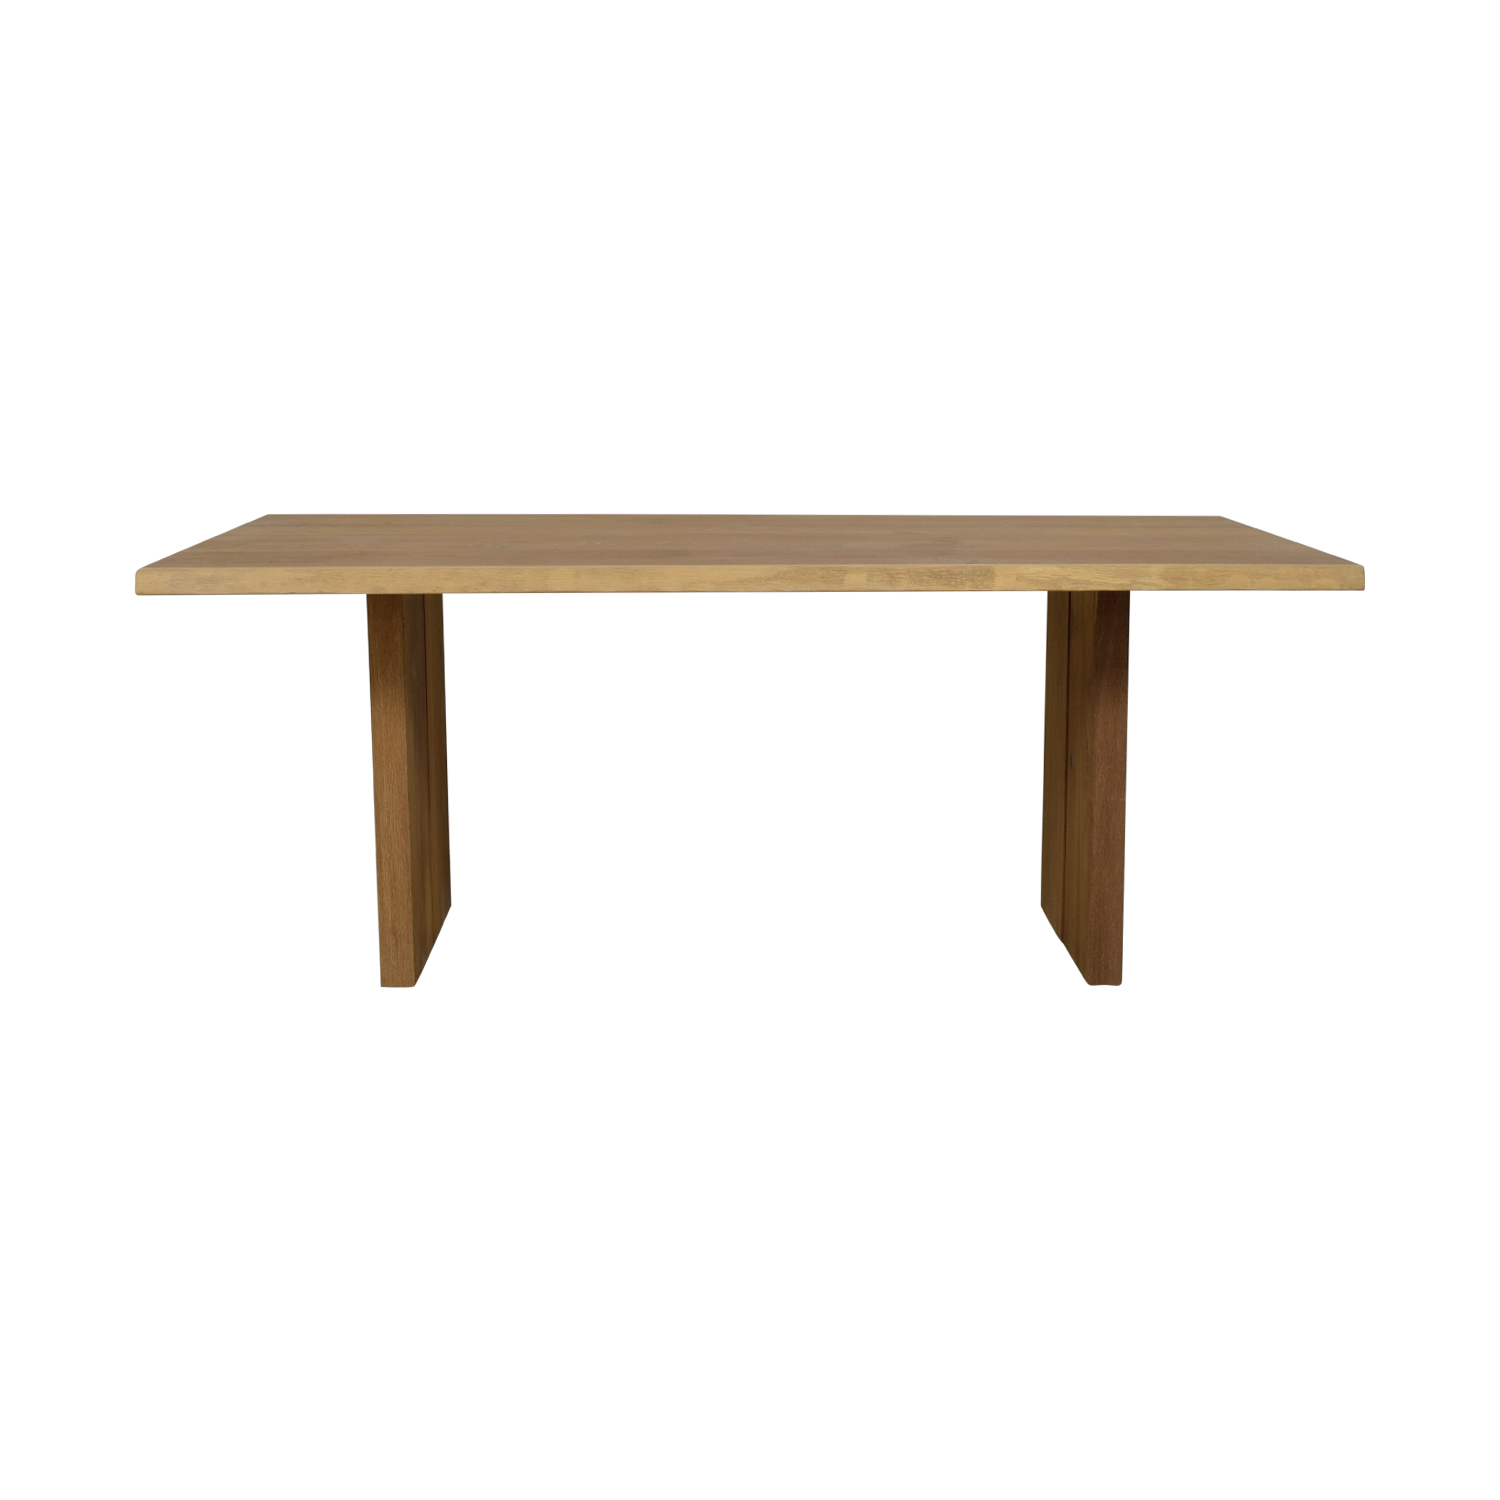 buy Restoration Hardware Restoration Hardware Natural Rustic Dining Table online